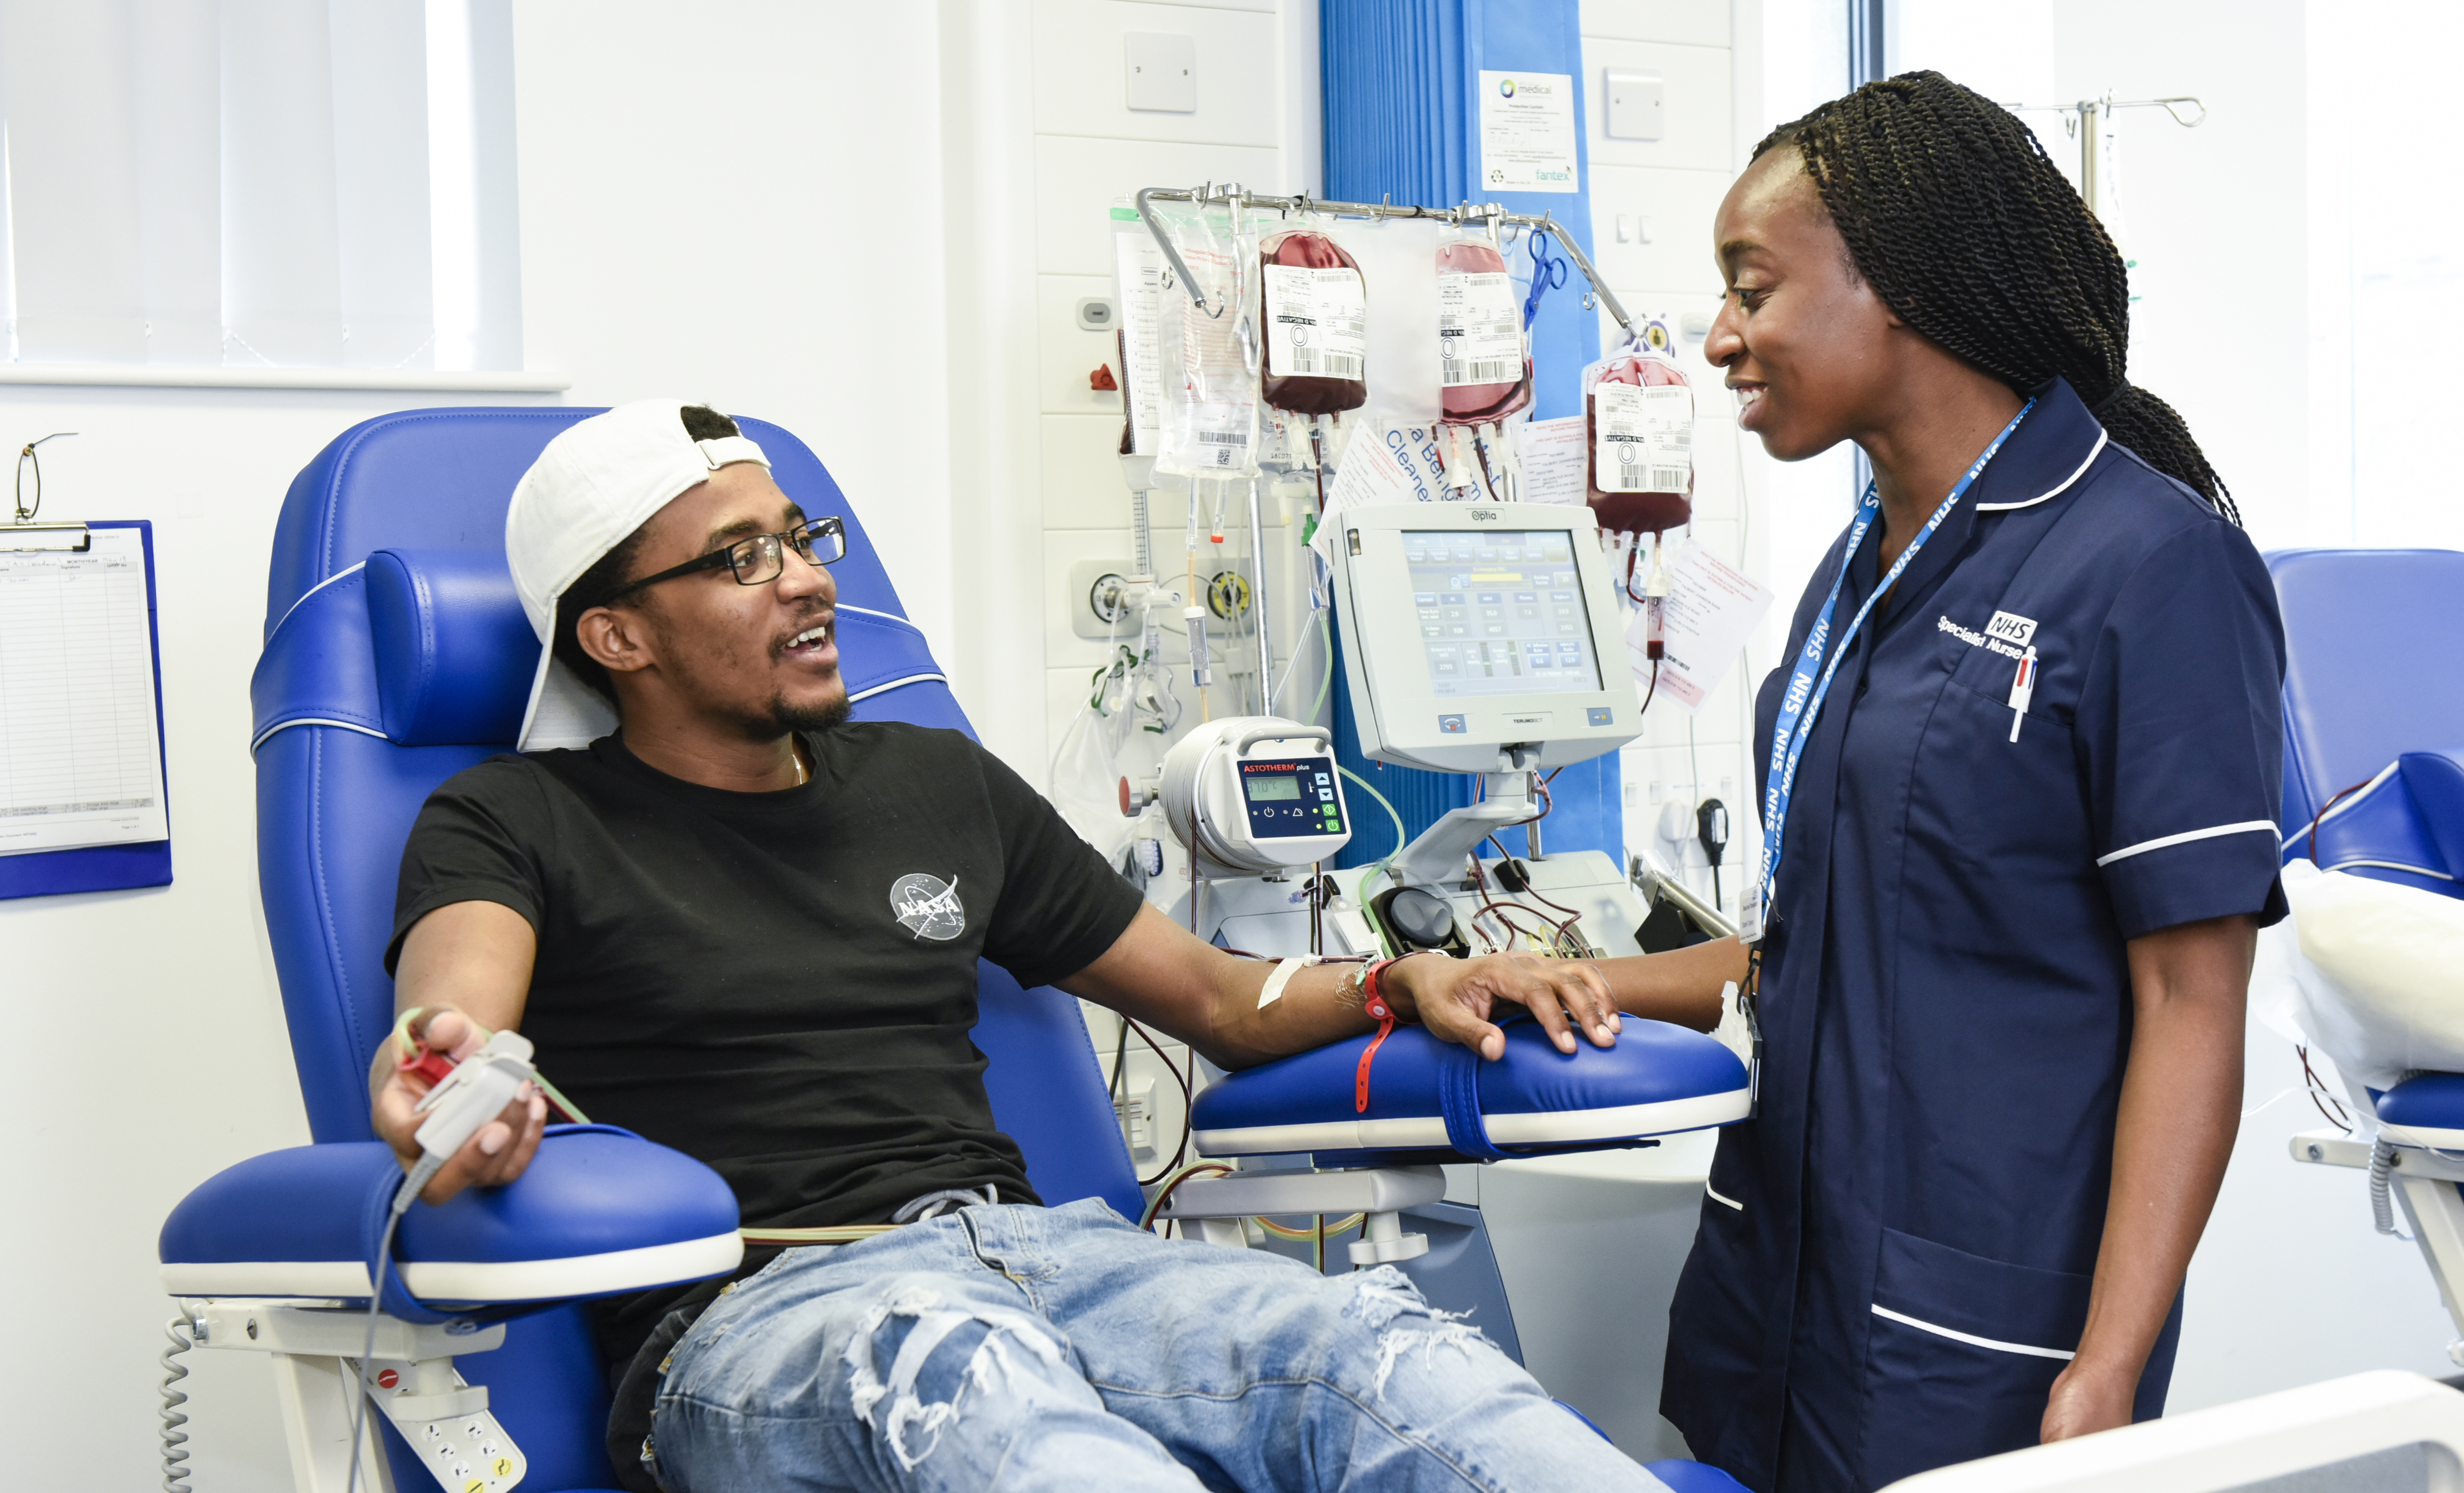 A patient and nurse chat while the patient receives apheresis